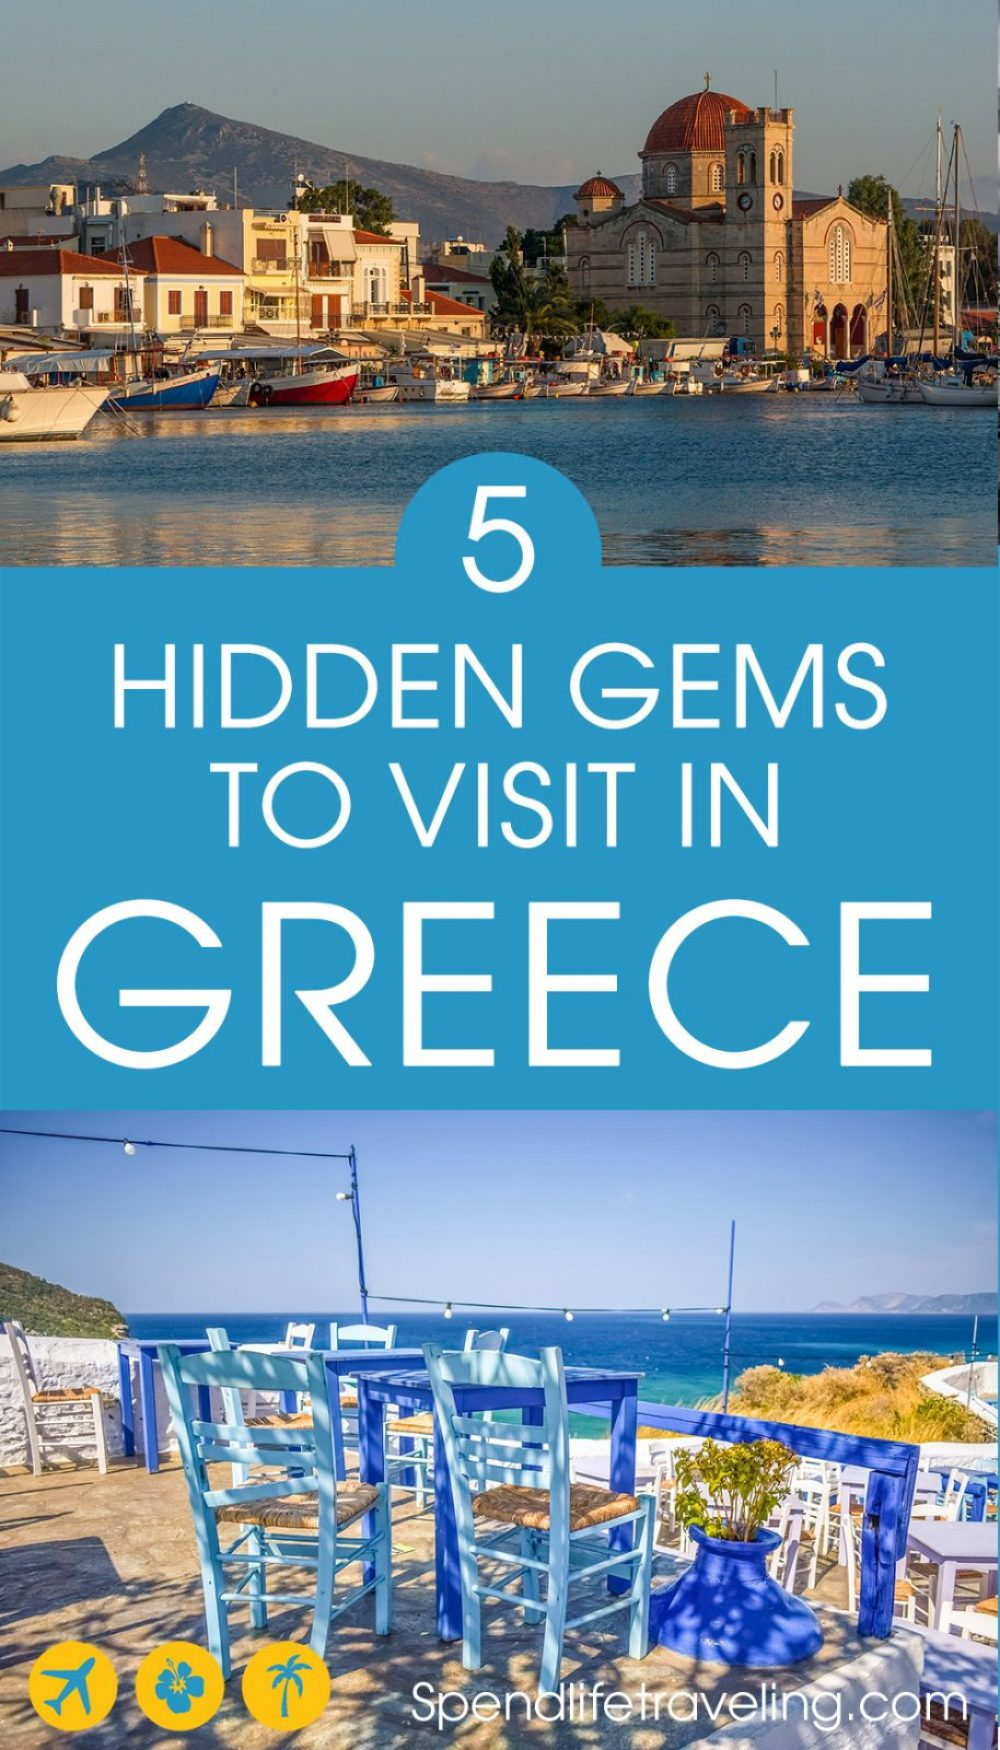 Greece has a lot of beautiful places worth visiting. Check out these 5 hidden gems in #Greece for some great travel inspiration. #visitGreece #travelGreece #Greekislands #greekvacation